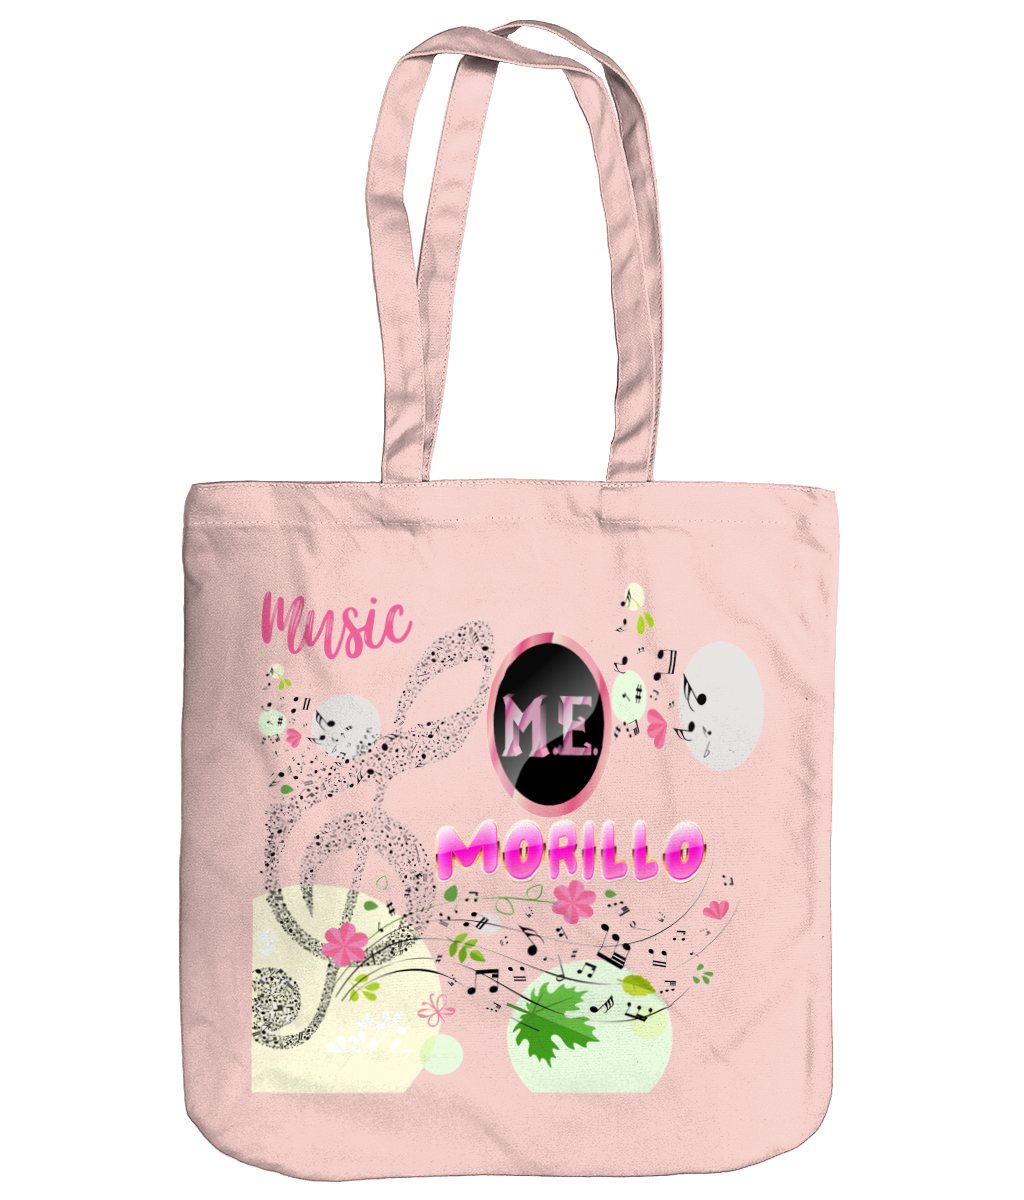 MORILLO SPRING BRIGHT MUSICAL ORGANIC TOTE Accessories & Homeware - MORILLO ENTERPRISE